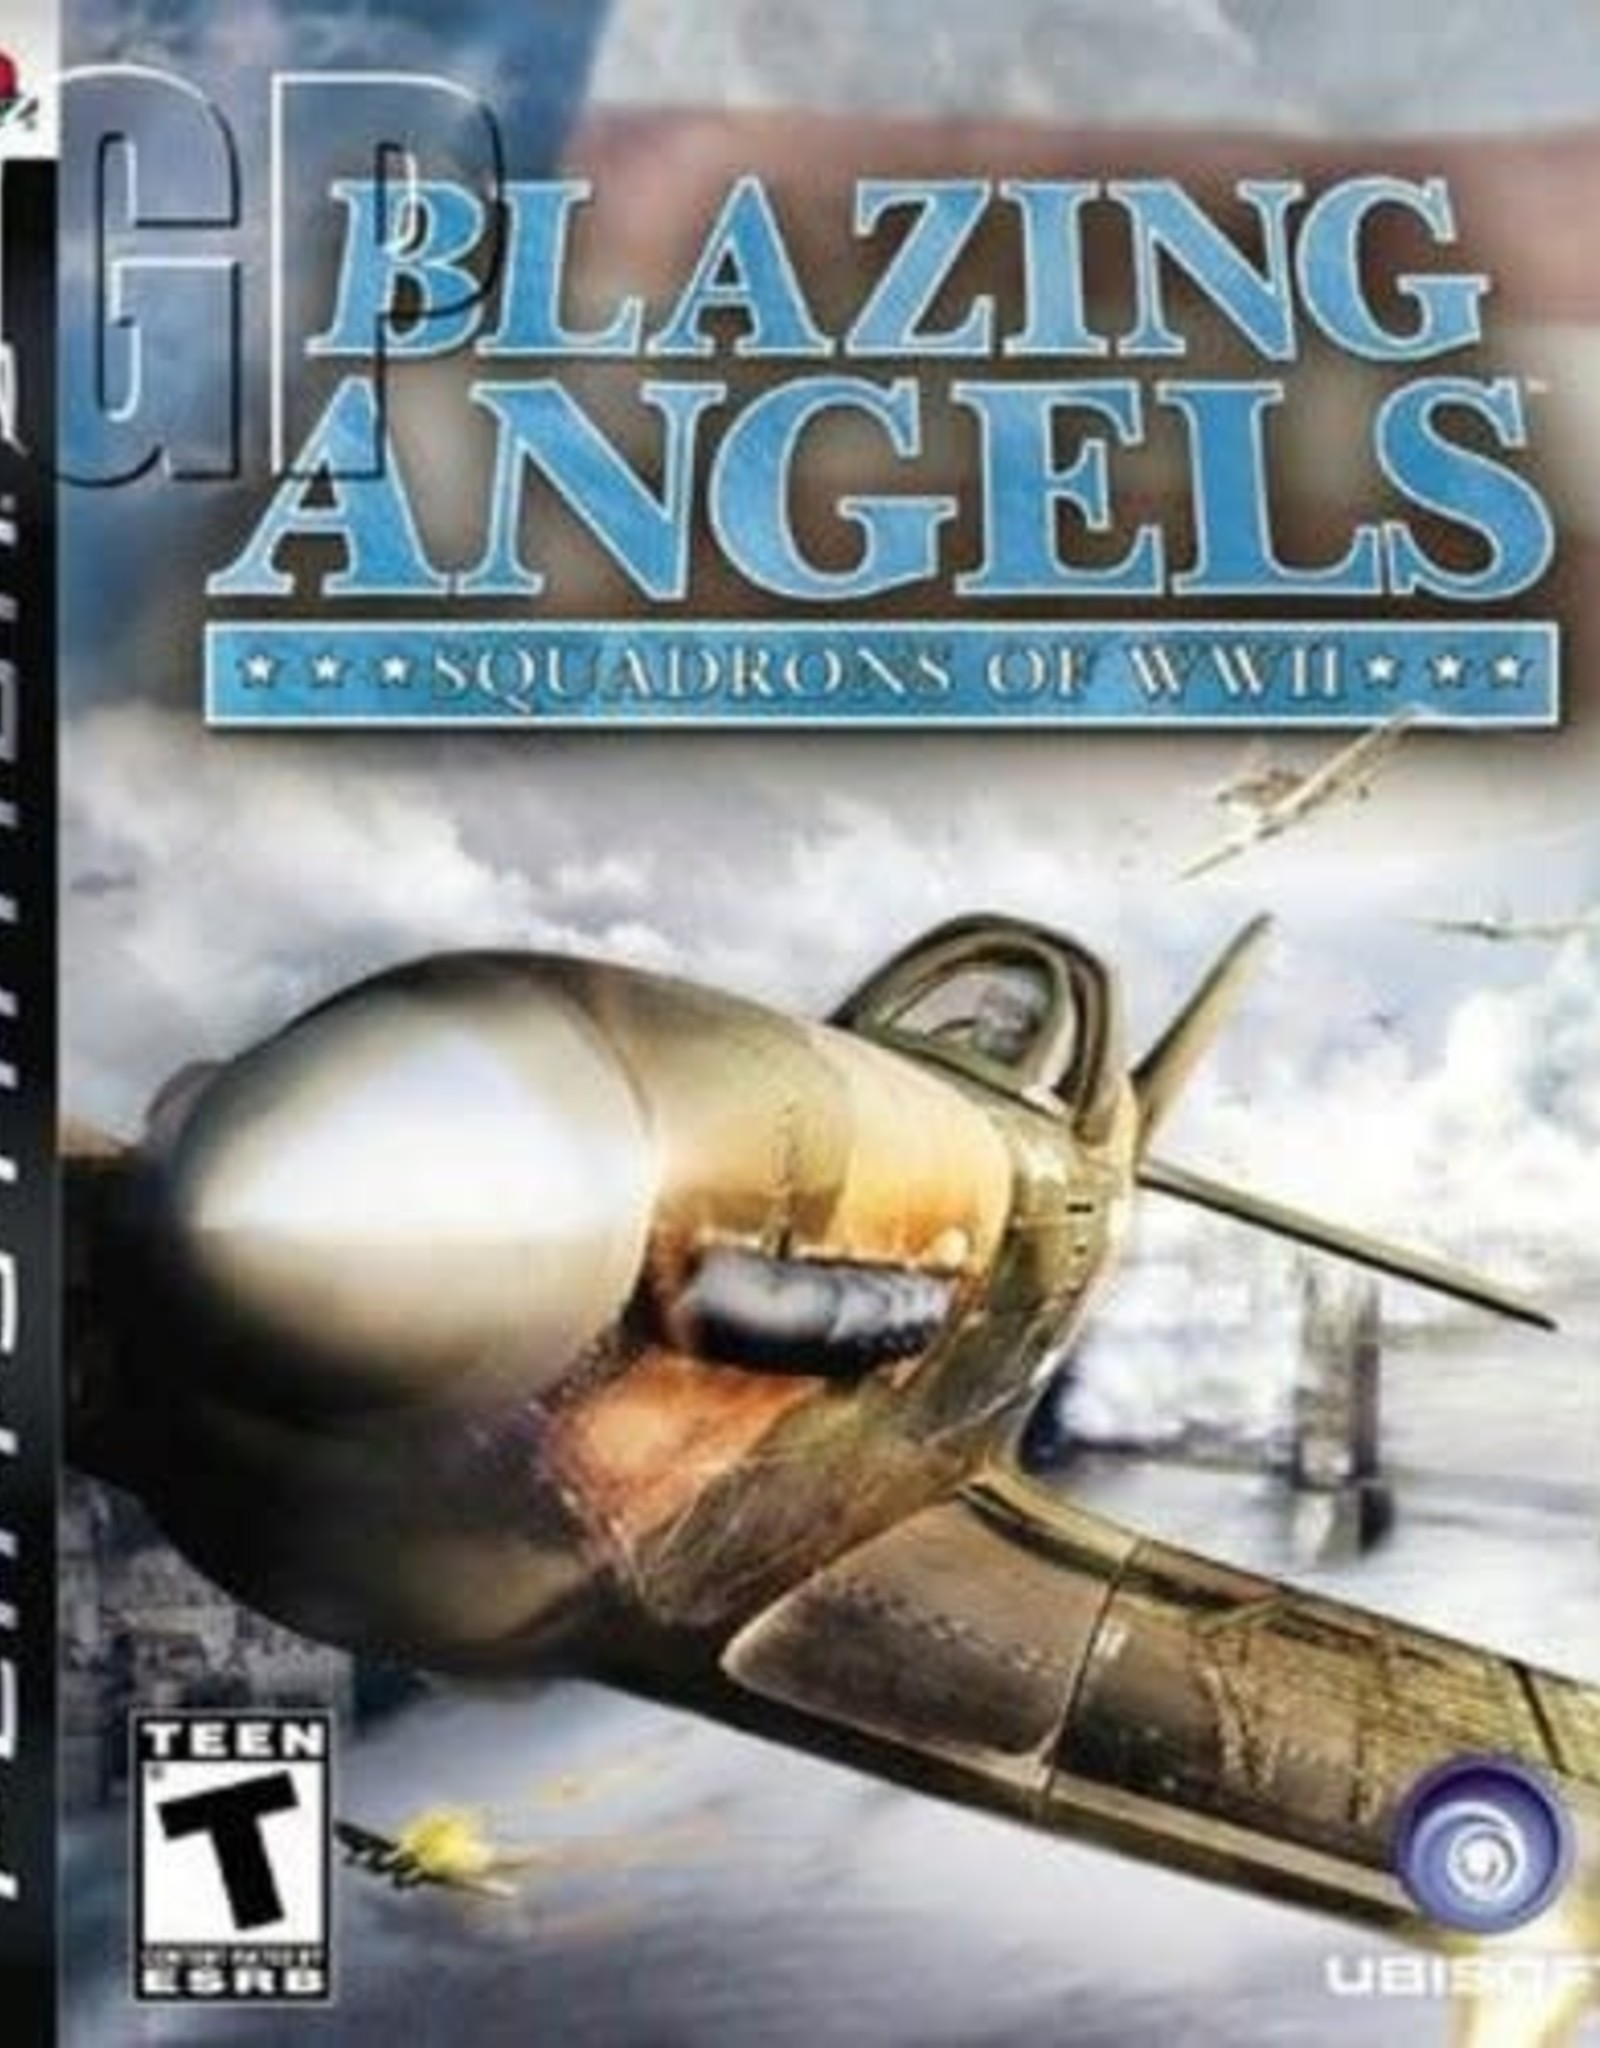 Blazing Angels 2 Secret Missions of WWII - PS3 PrePlayed